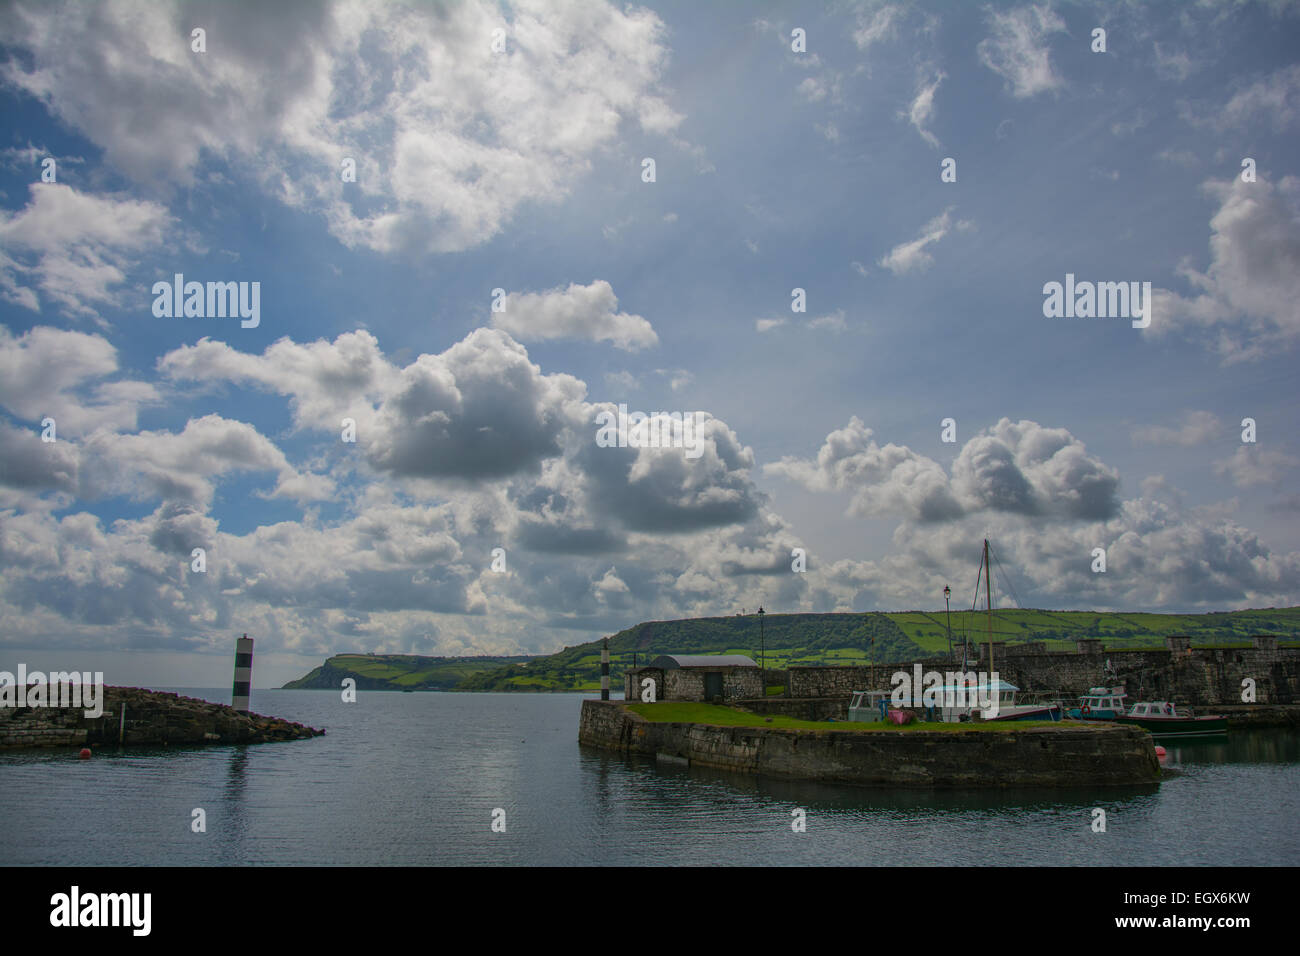 A small harbor at the coast of Ireland on a partly cloudy day - Stock Image